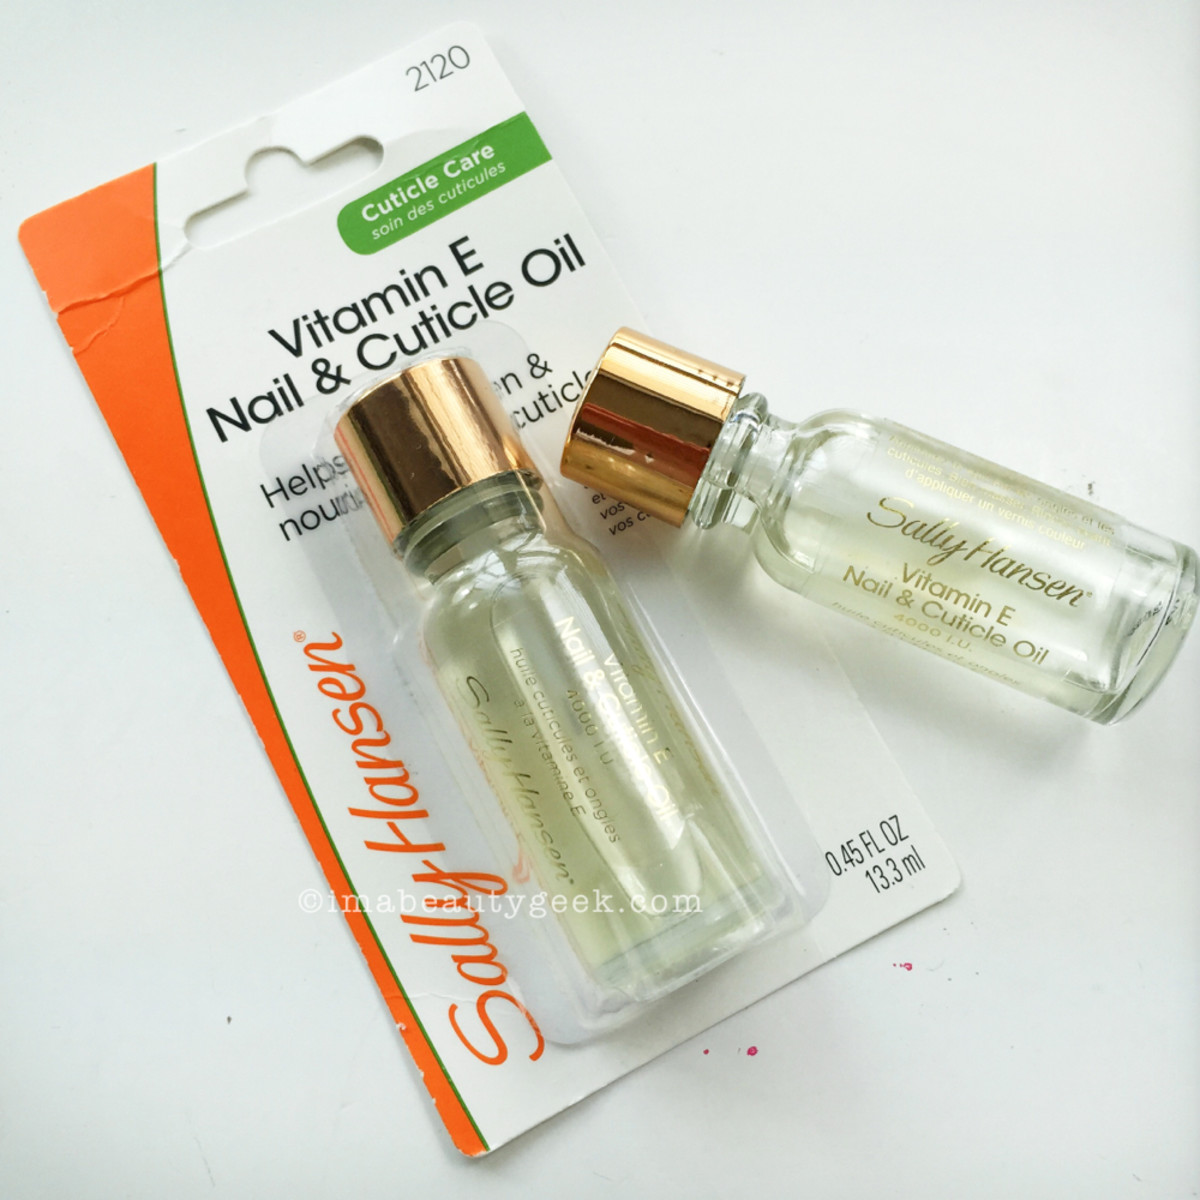 ManiGeek's Favorite Cuticle Oil